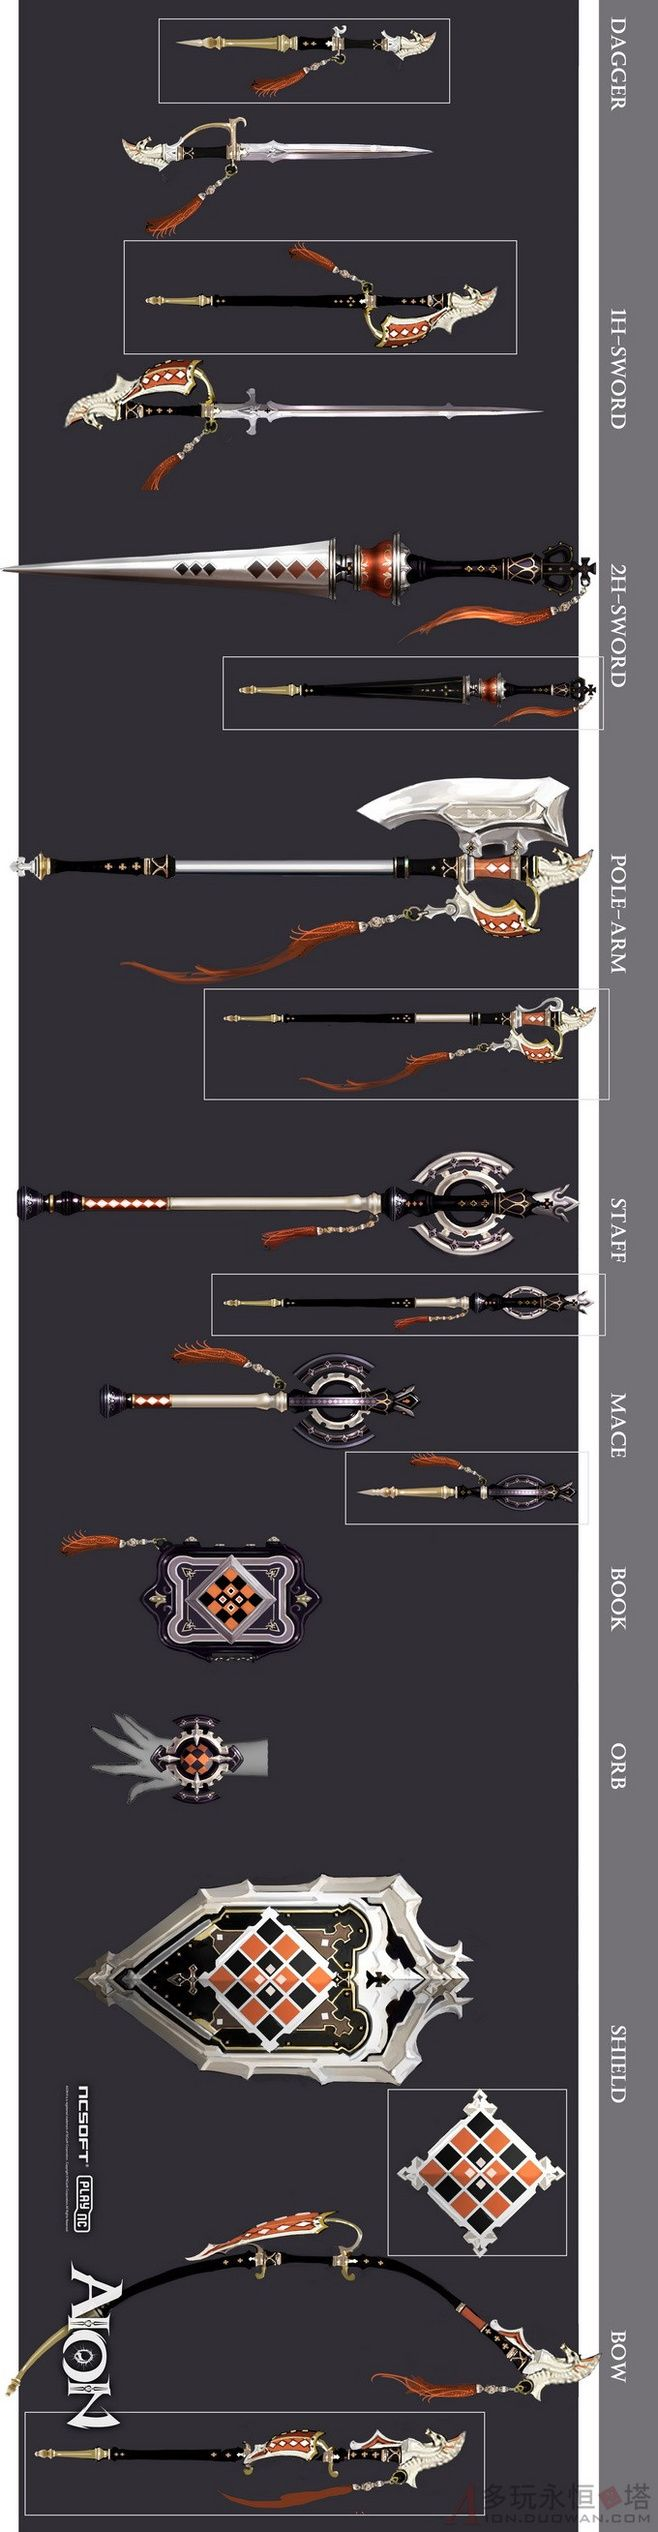 Aion Weapons.